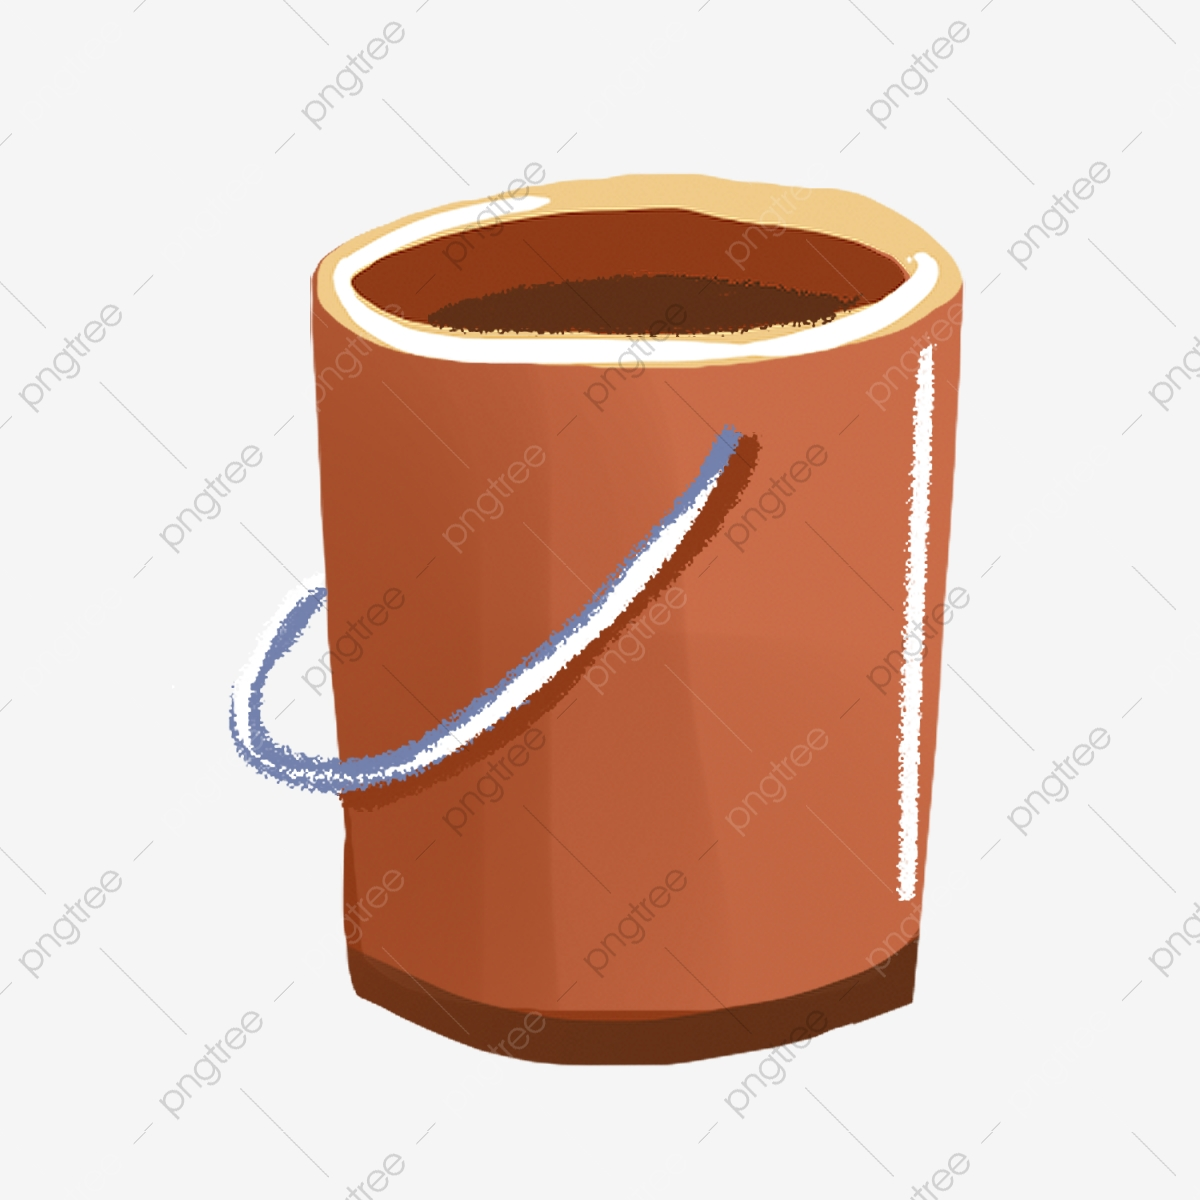 Yellow Hand Painted Arc Bucket, Luster, Cartoon